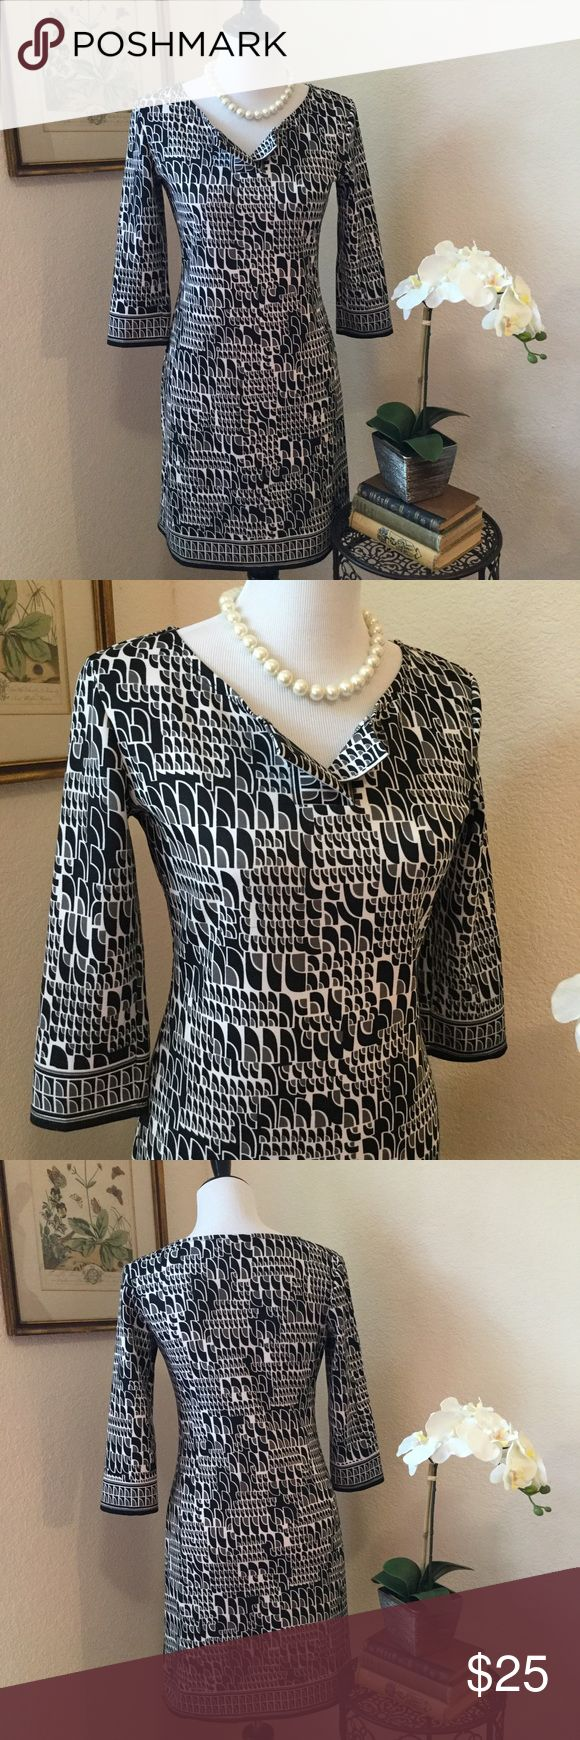 MAX STUDIO Geometric Print Shift Dress Cool black and white unlined shift dress in a mod graphic print. This slip-on dress has 3/4 length sleeves and a straight body. Wear for career or for a special event. In excellent like new condition. Poly and spandex blend. Easy to wear! Max Studio Dresses